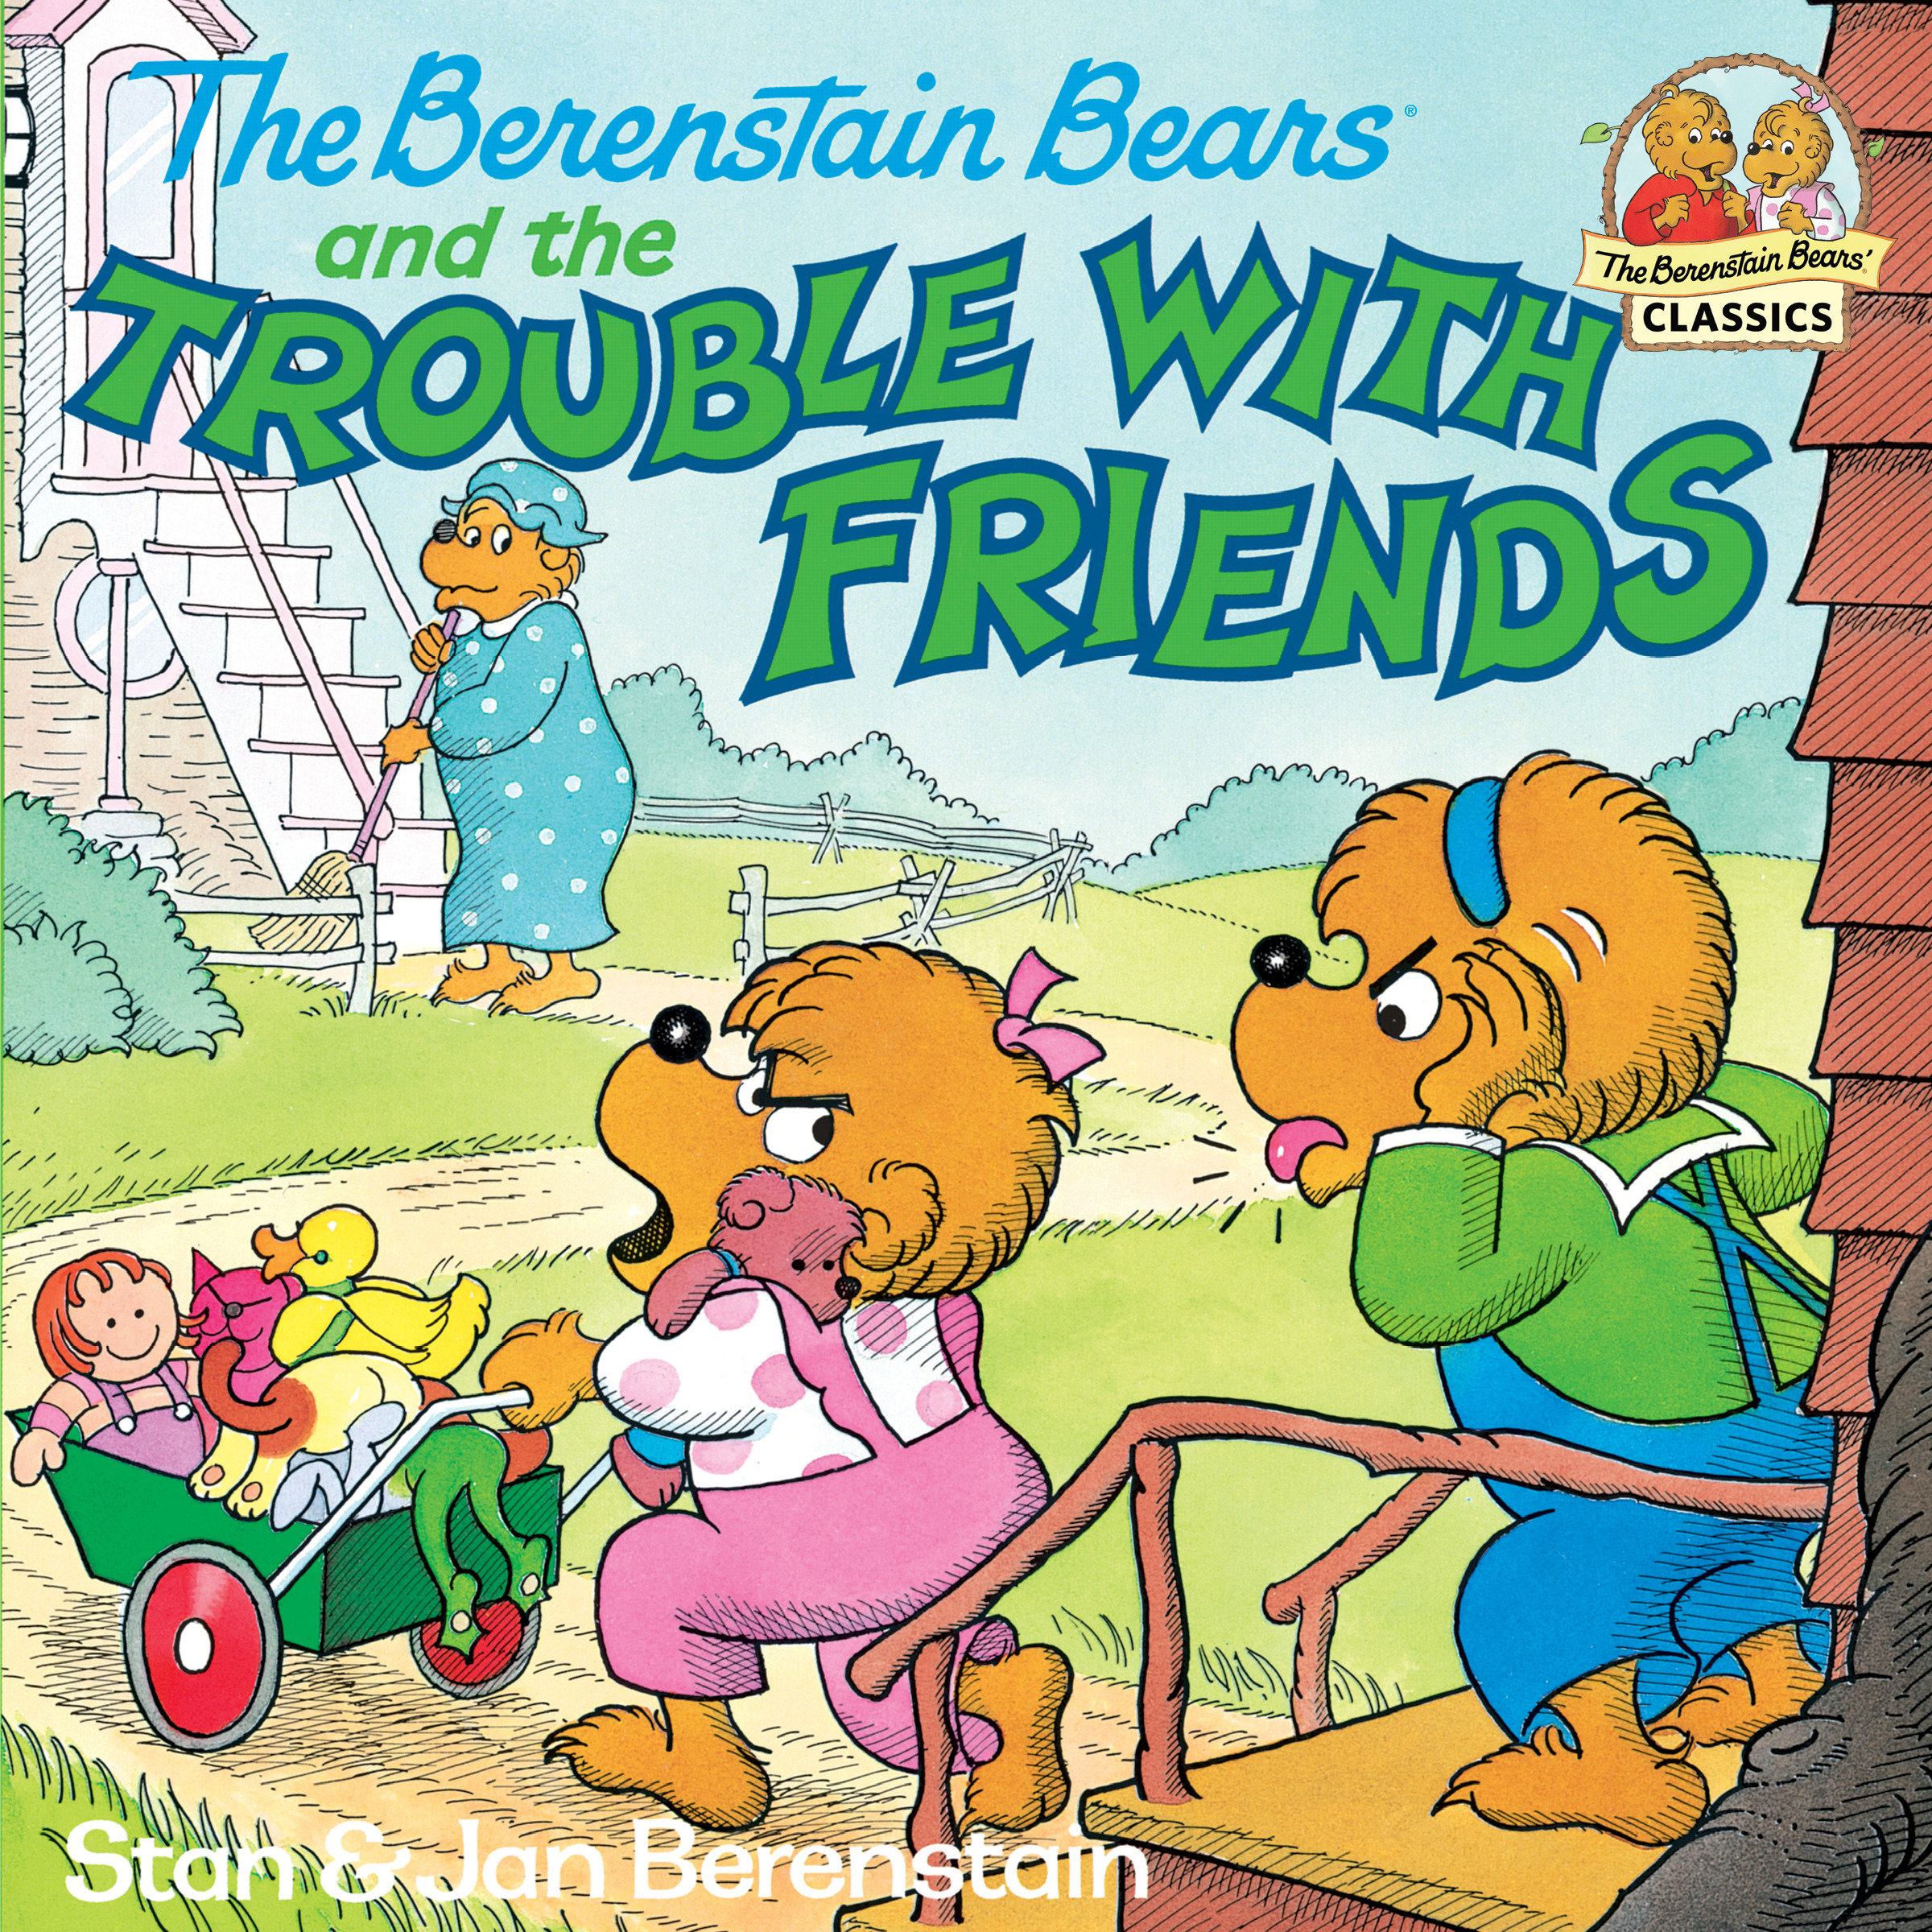 The Berenstain Bears and the trouble with friends cover image